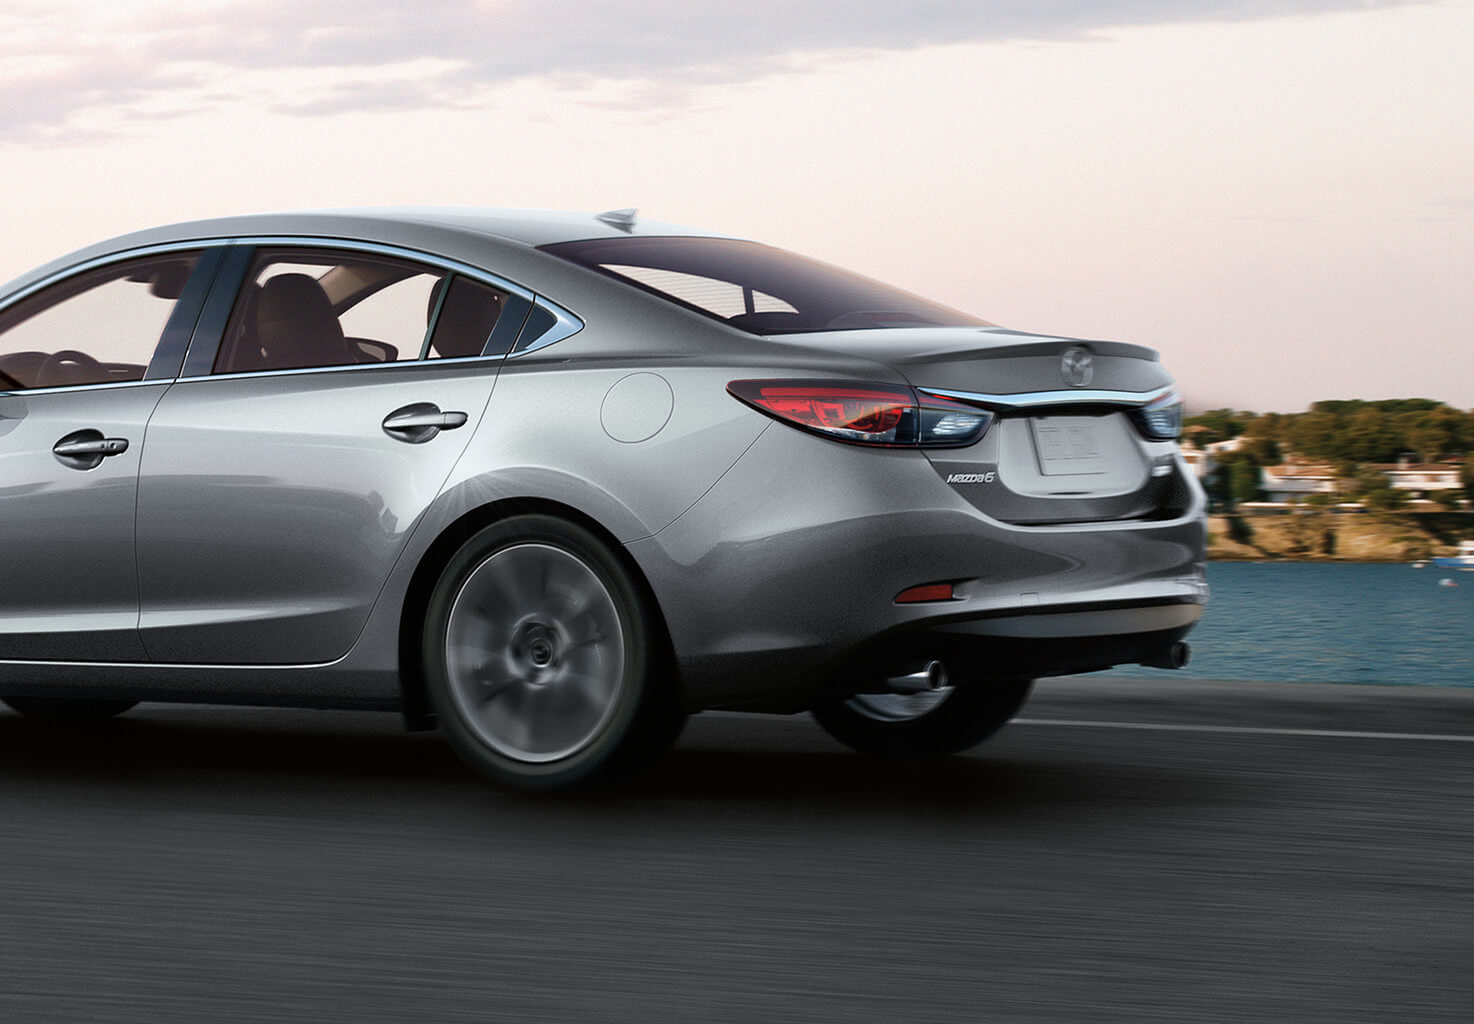 Silver Mazda6 going fast down the road